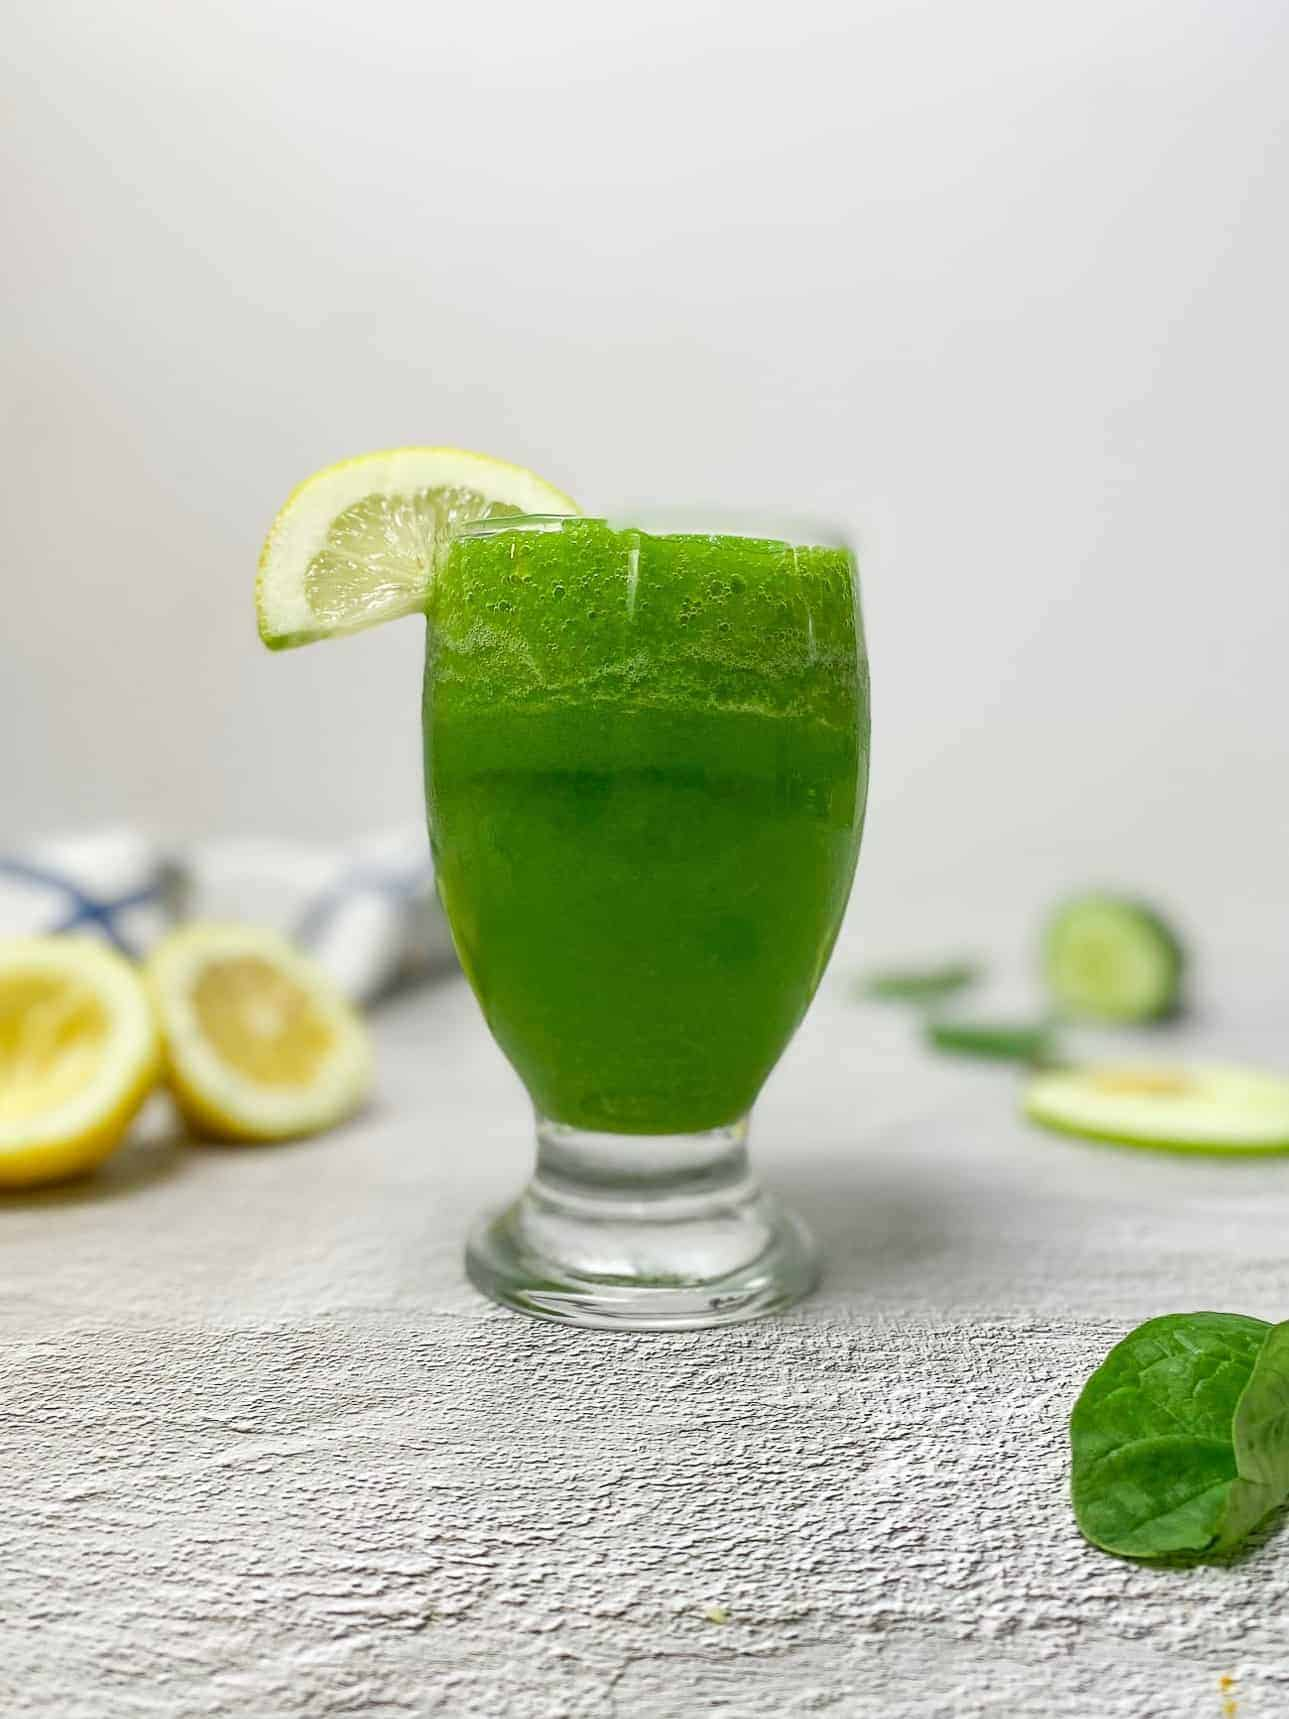 glass of sour apple smoothie with lemon wedge garnish